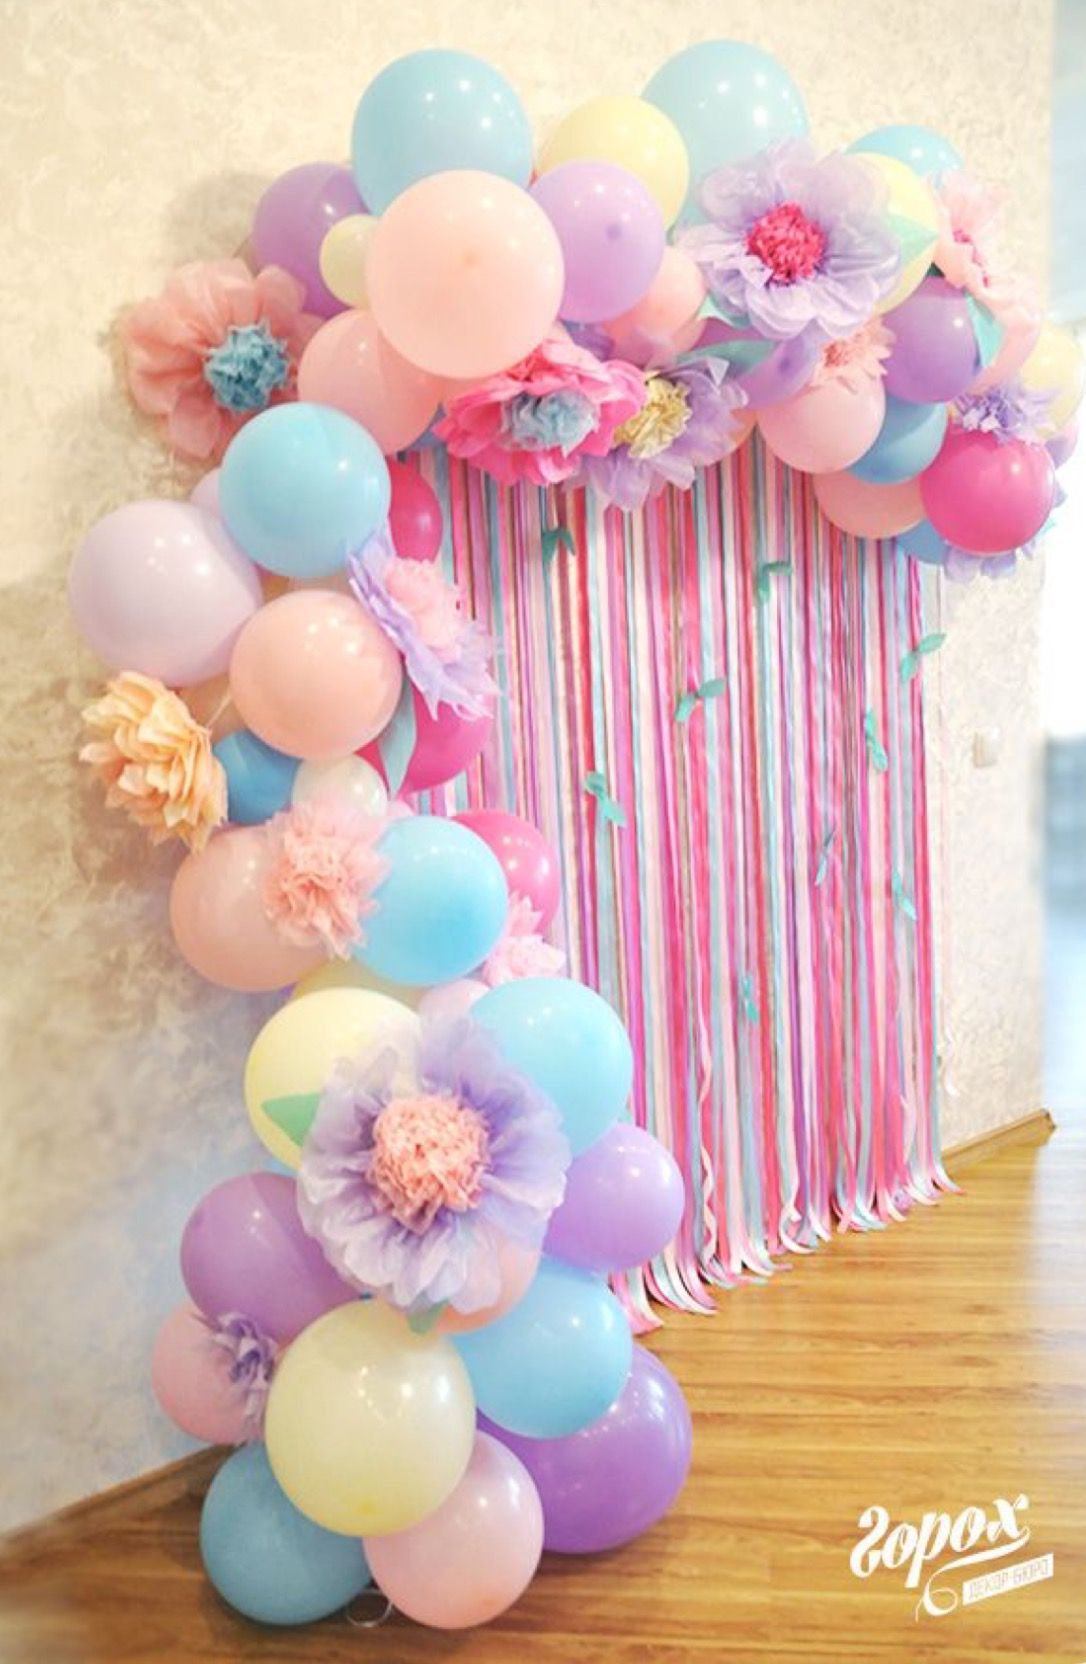 Pin by jocelyn ruiz on fondos para selfie encortinados for 7 star balloon decoration